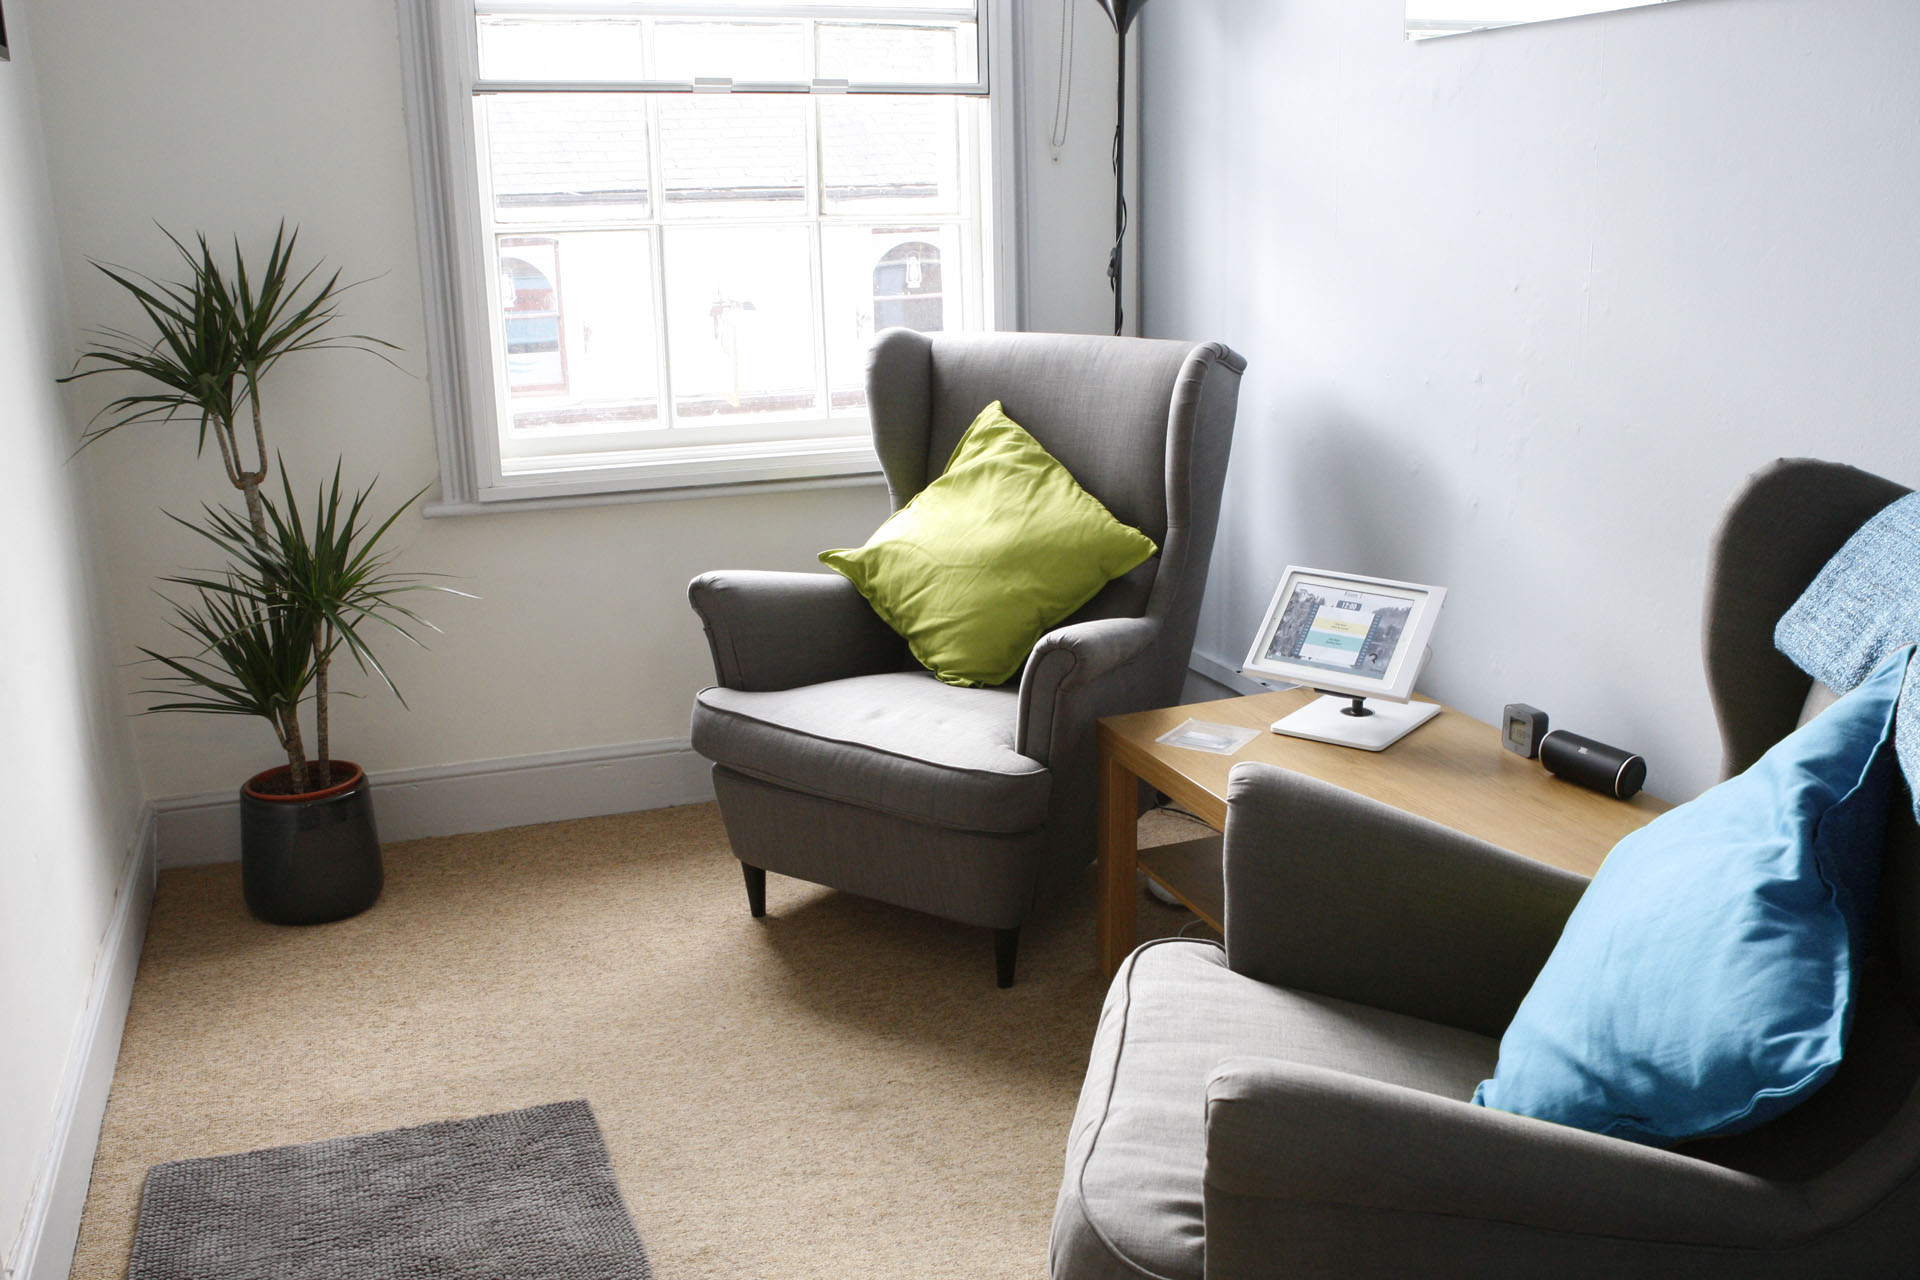 Consulting And Therapy Rooms To Rent Leamington Spa